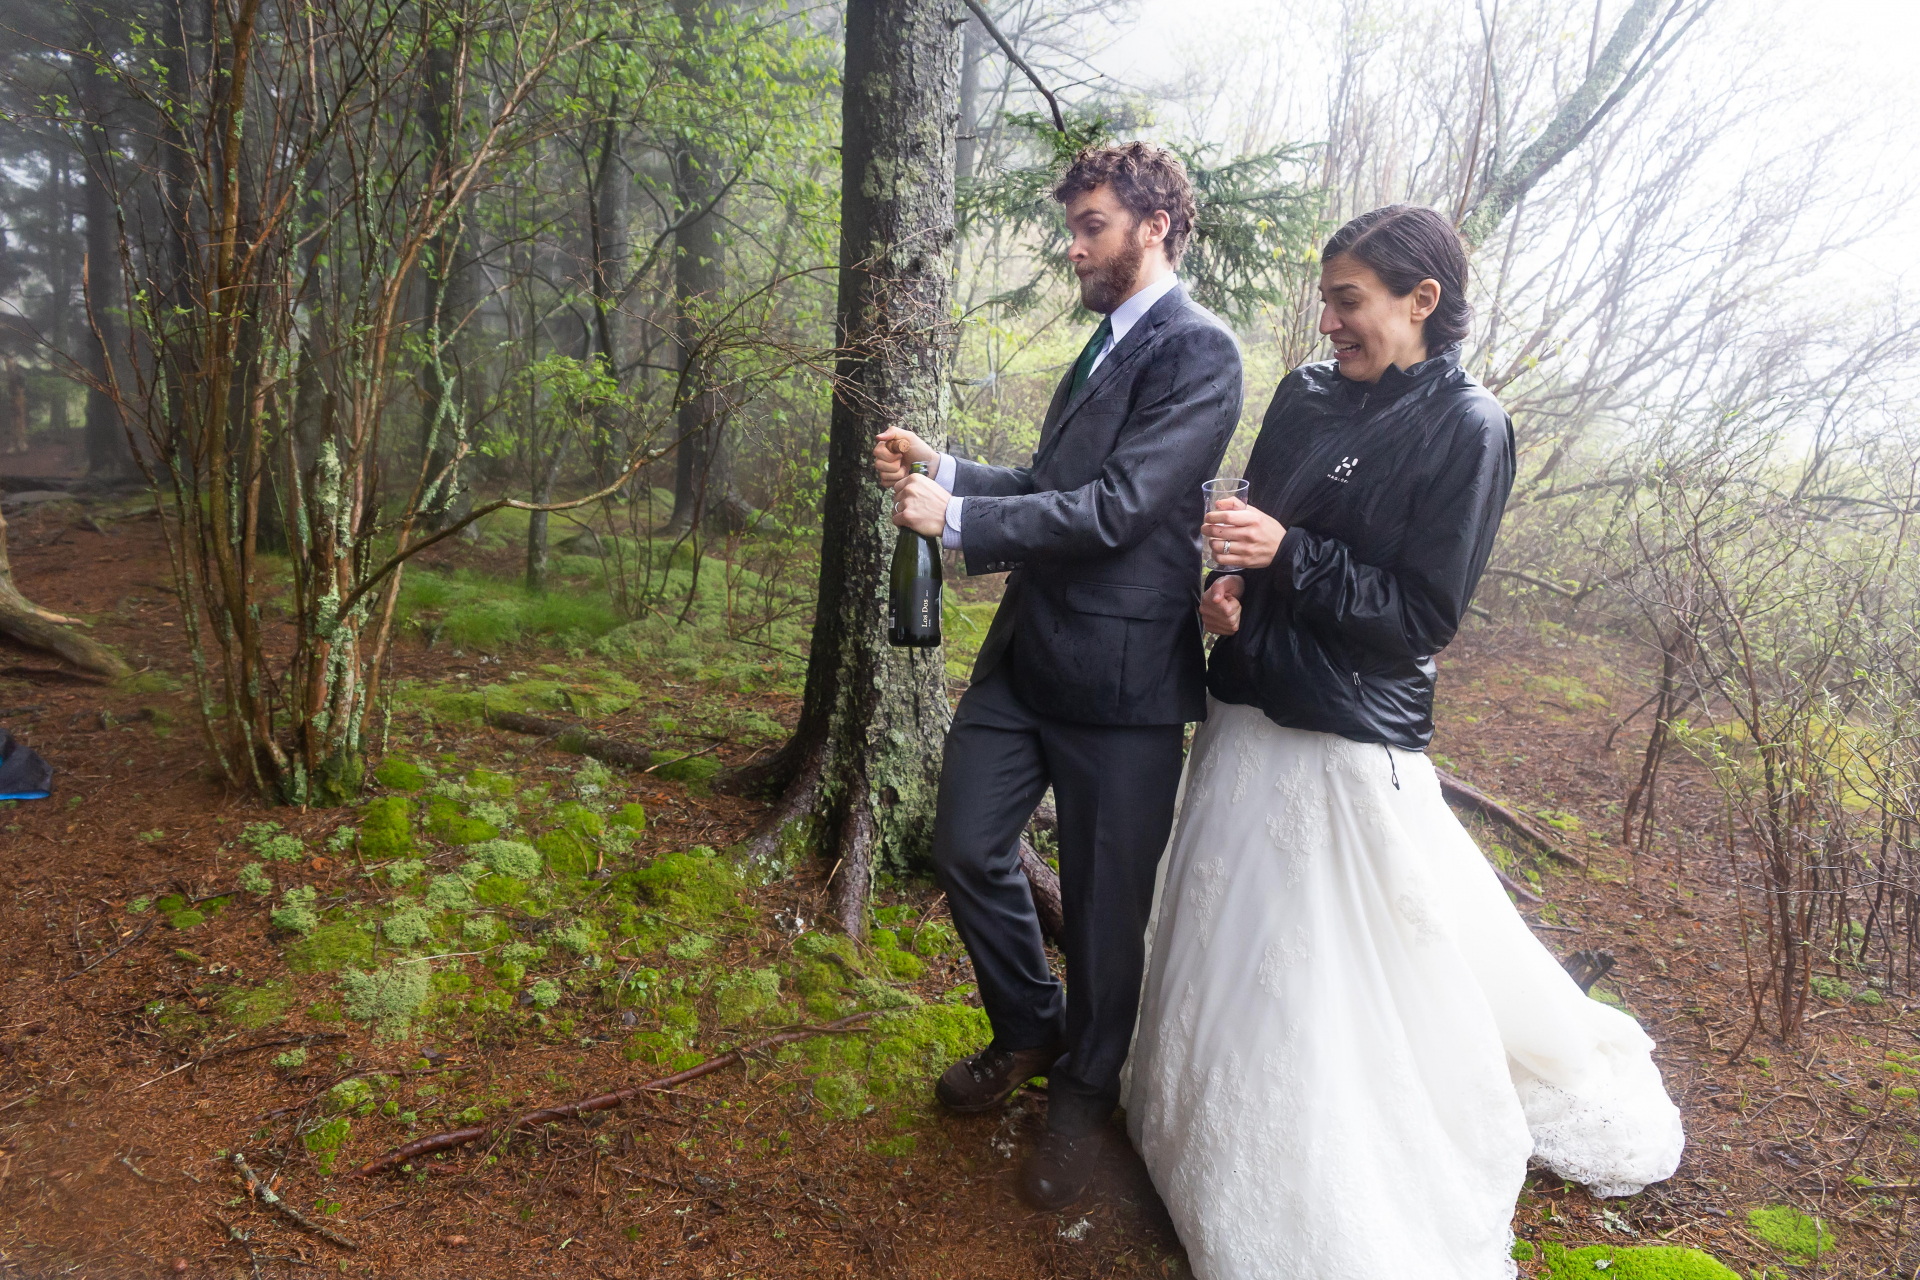 North Carolina Elopement Photo from the Forest Ceremony | The groom pops open a bottle of champagne